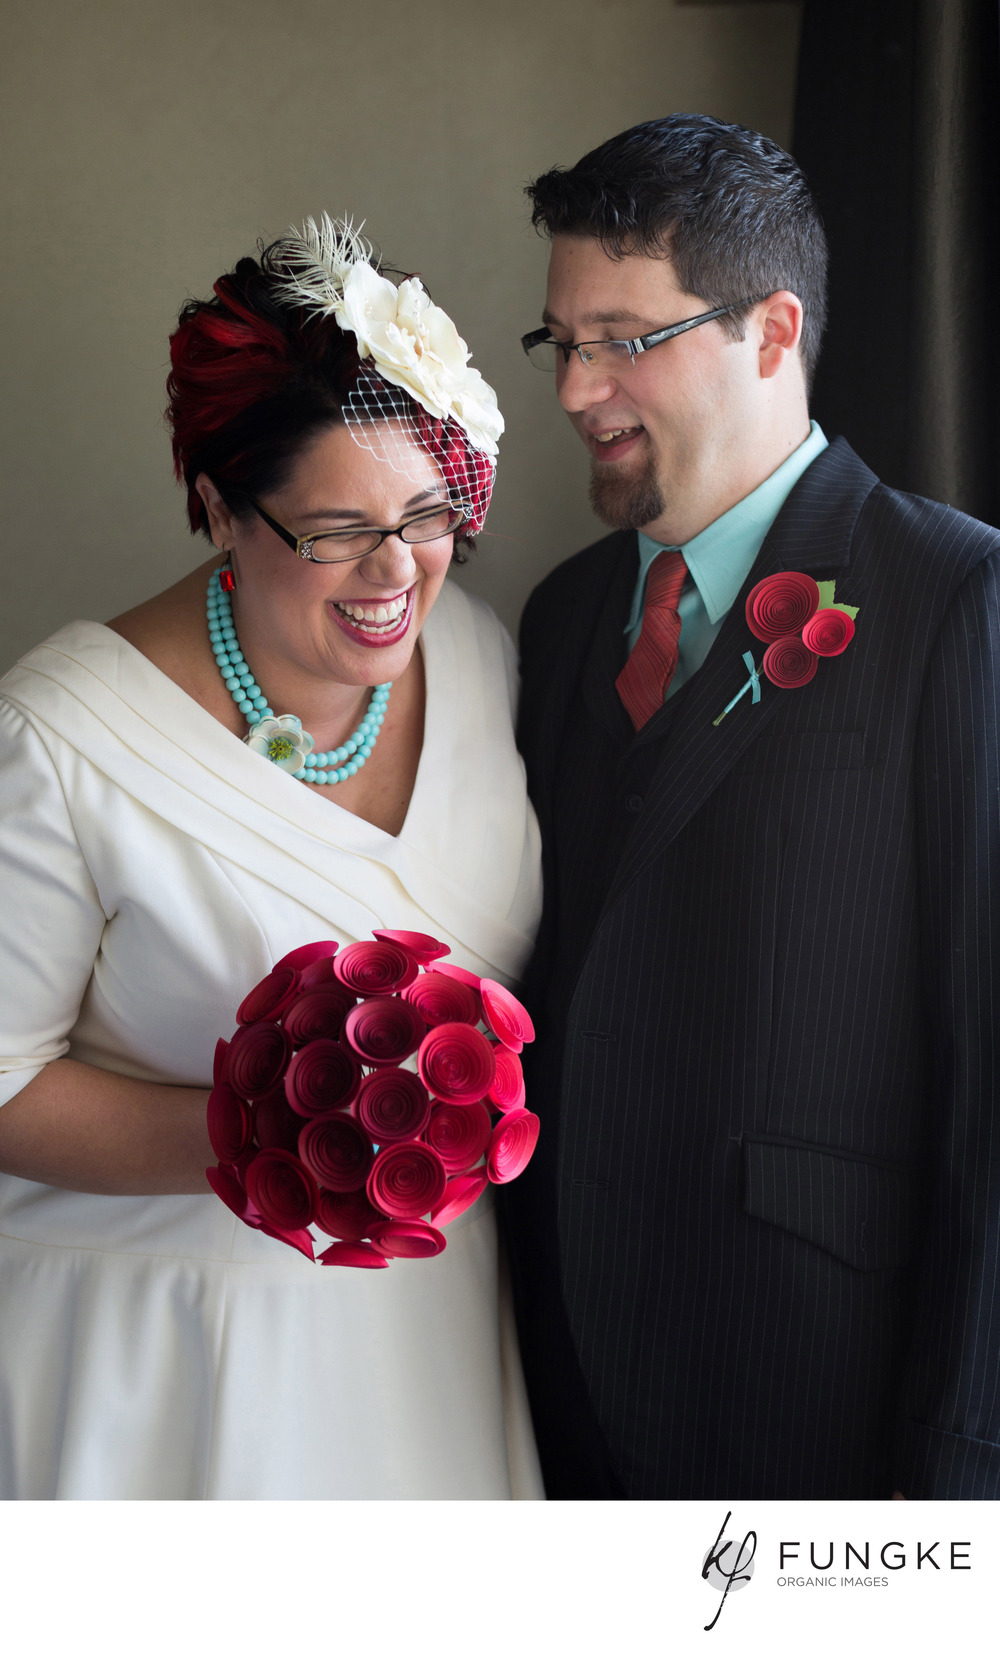 Angela is carrying a stunning large paper flower bouquet in red ombre.   ©2013  Fungke  Images    http://www. fungke .com/